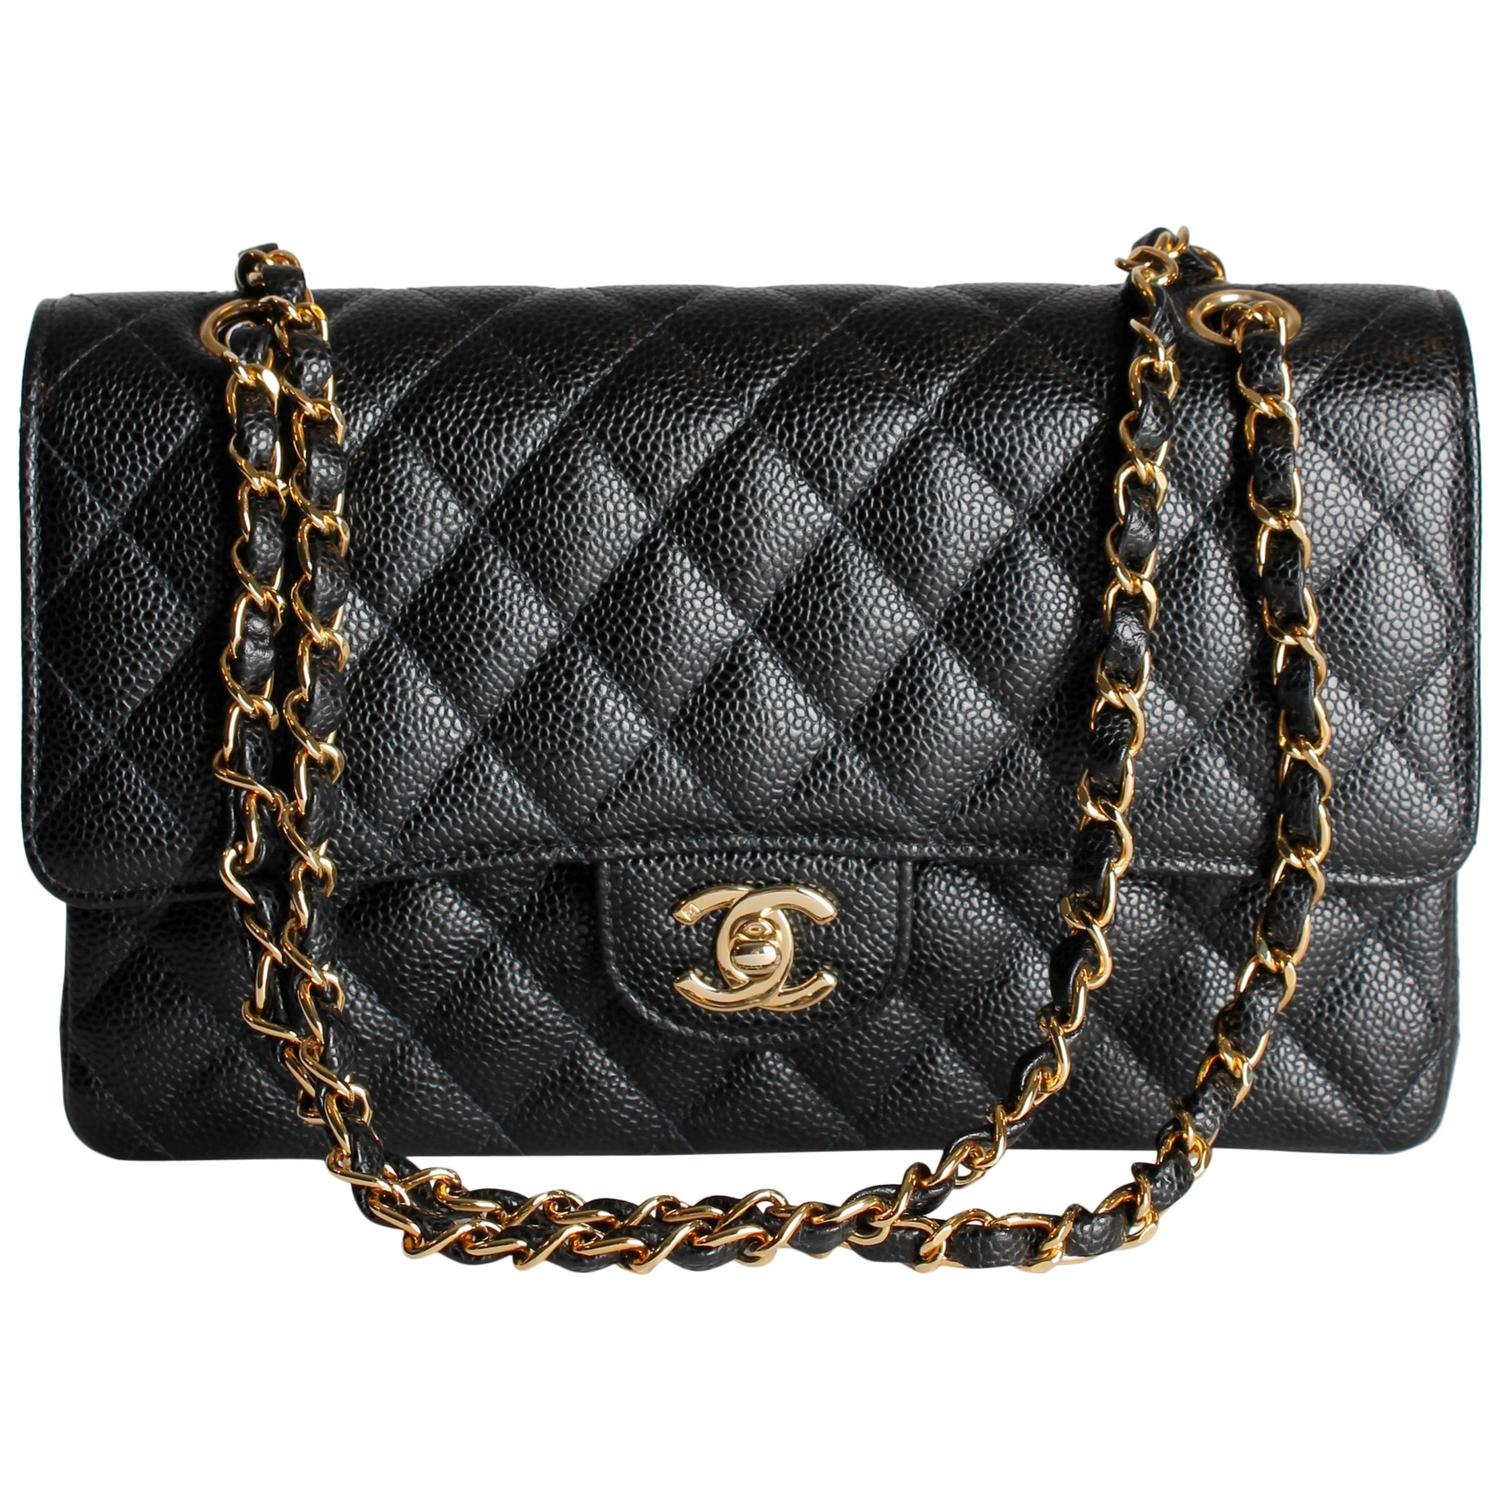 chanel caviar medium classic double flap bag black gold for sale at 1stdibs. Black Bedroom Furniture Sets. Home Design Ideas